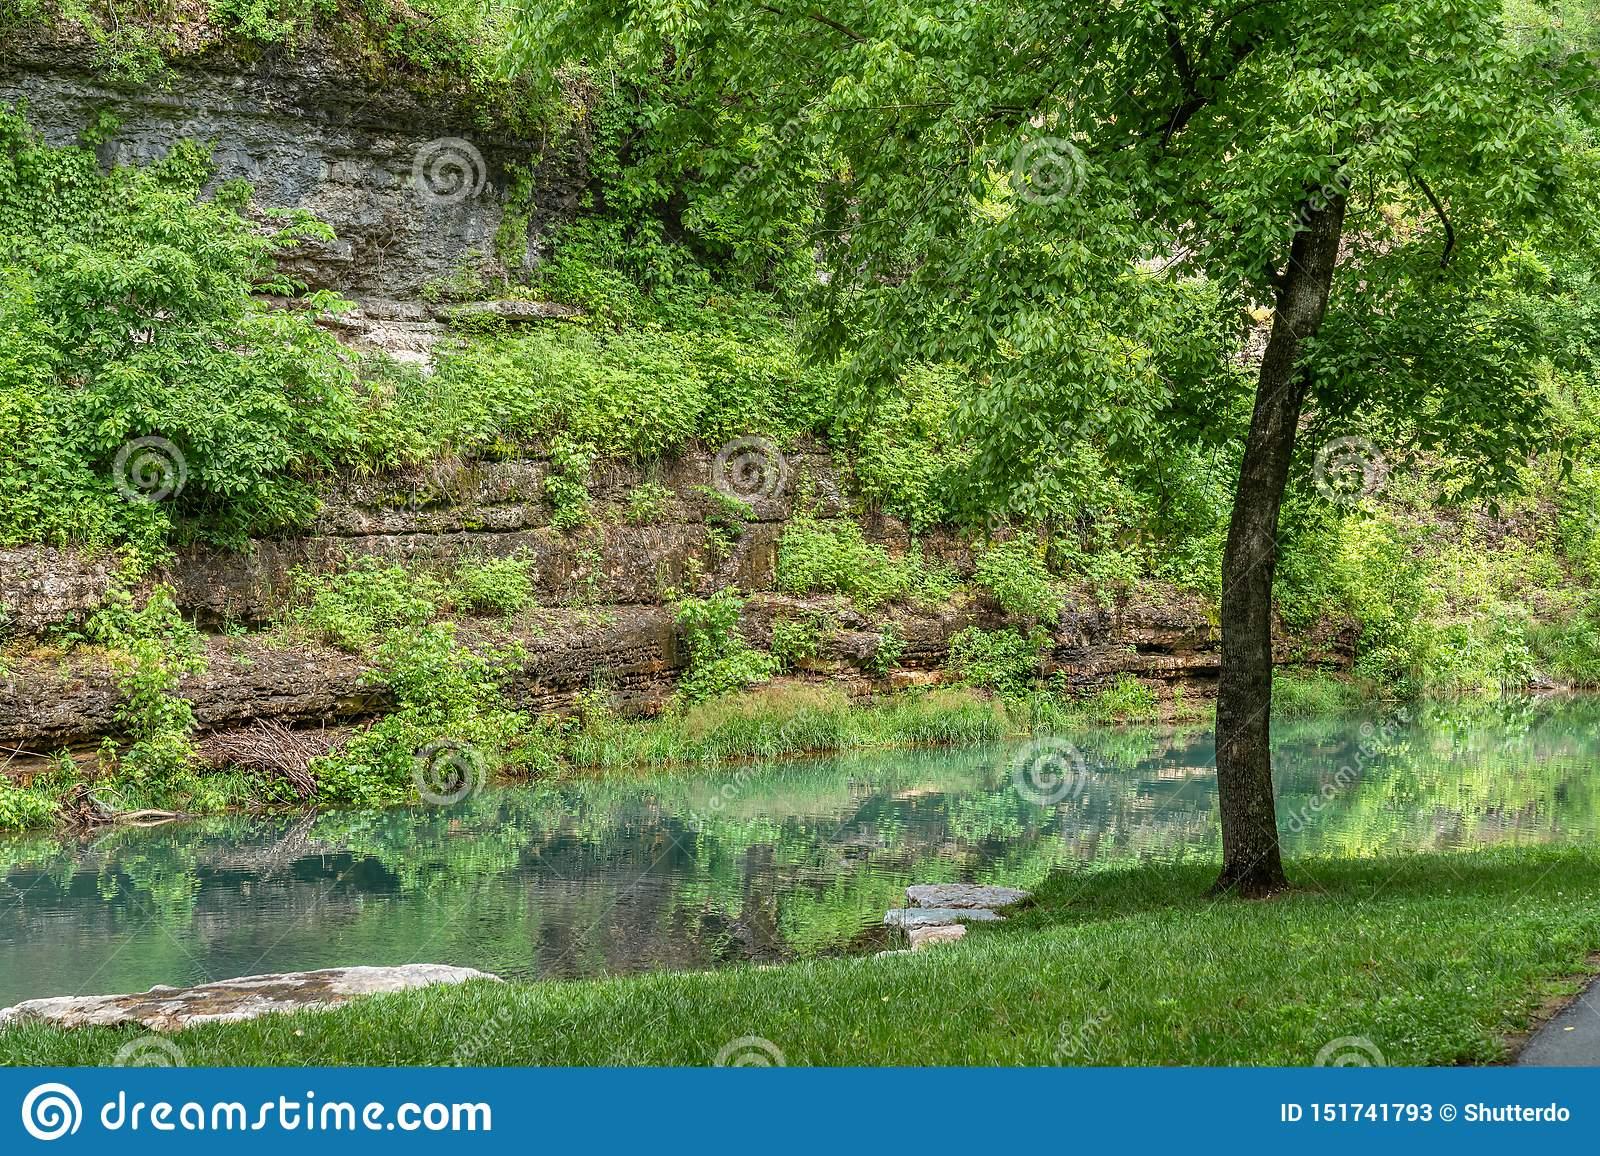 Canyon rock wall with reflections in green water